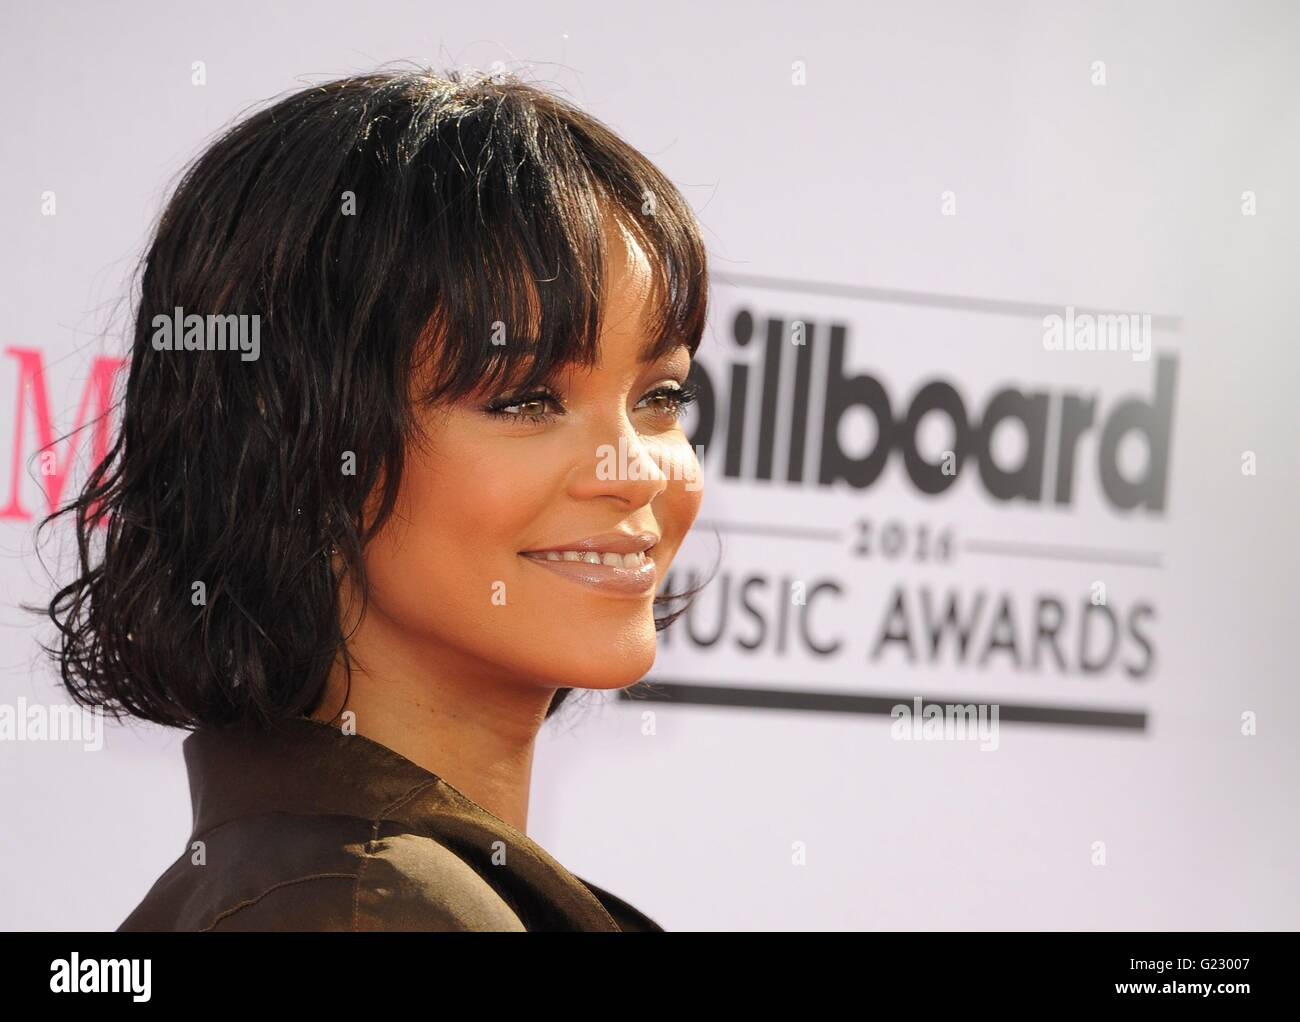 Las Vegas, NV, USA. 22nd May, 2016. Rihanna at arrivals for 2016 Billboard Music Awards - Arrivals 2, T-Mobile Arena, - Stock Image